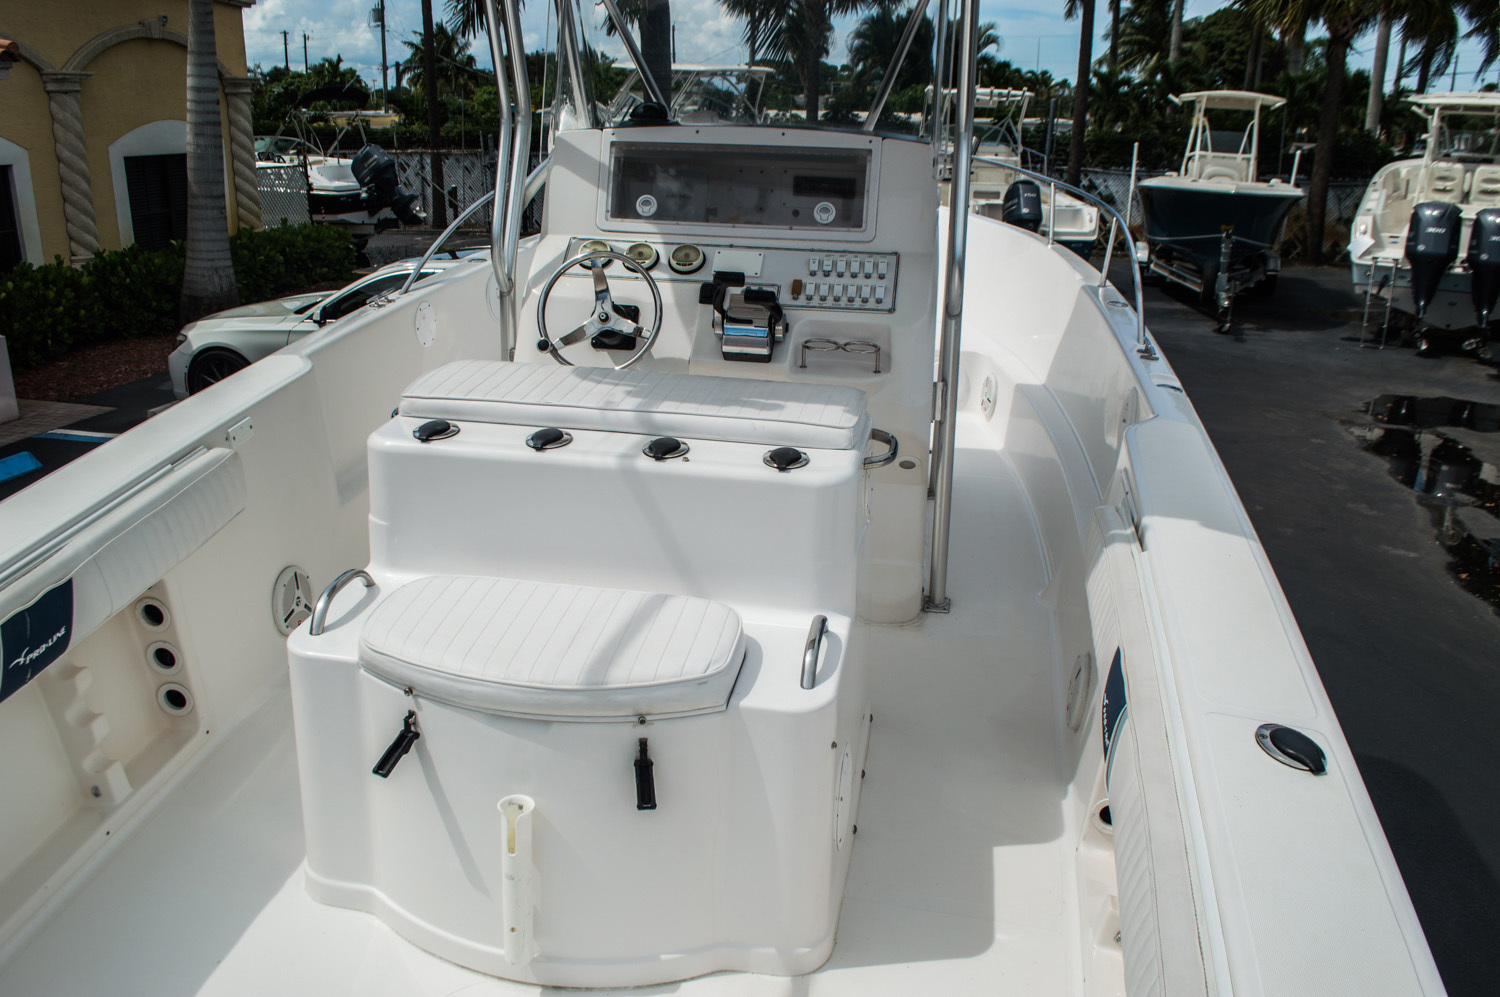 Thumbnail 8 for Used 2004 Pro-Line 25 Sport boat for sale in West Palm Beach, FL